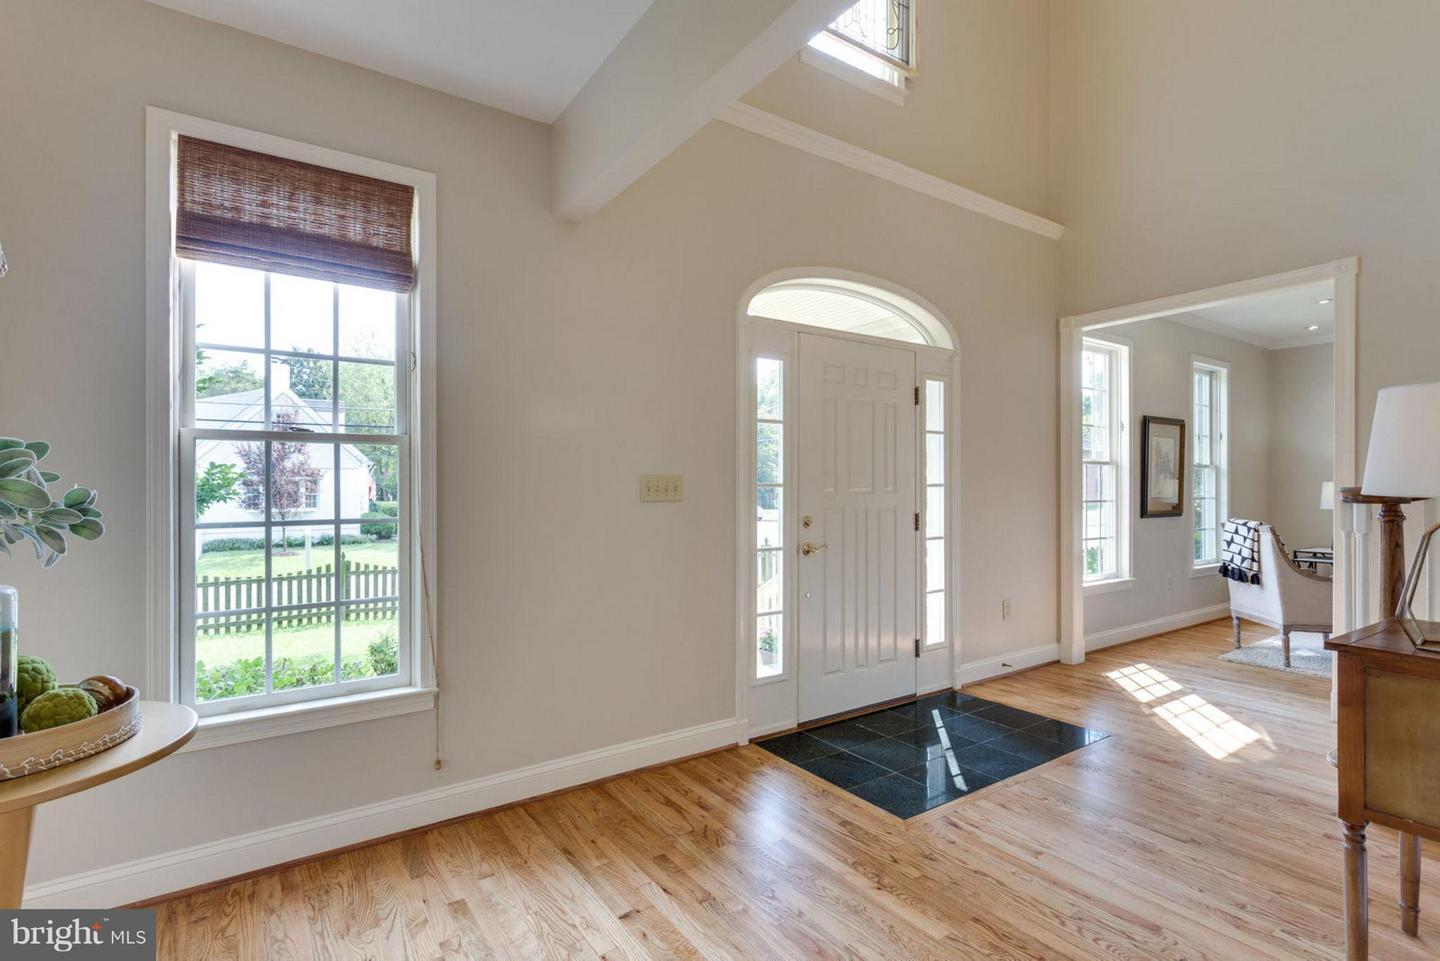 Additional photo for property listing at 1262 Olde Towne Rd Alexandria, Virginia 22307 United States